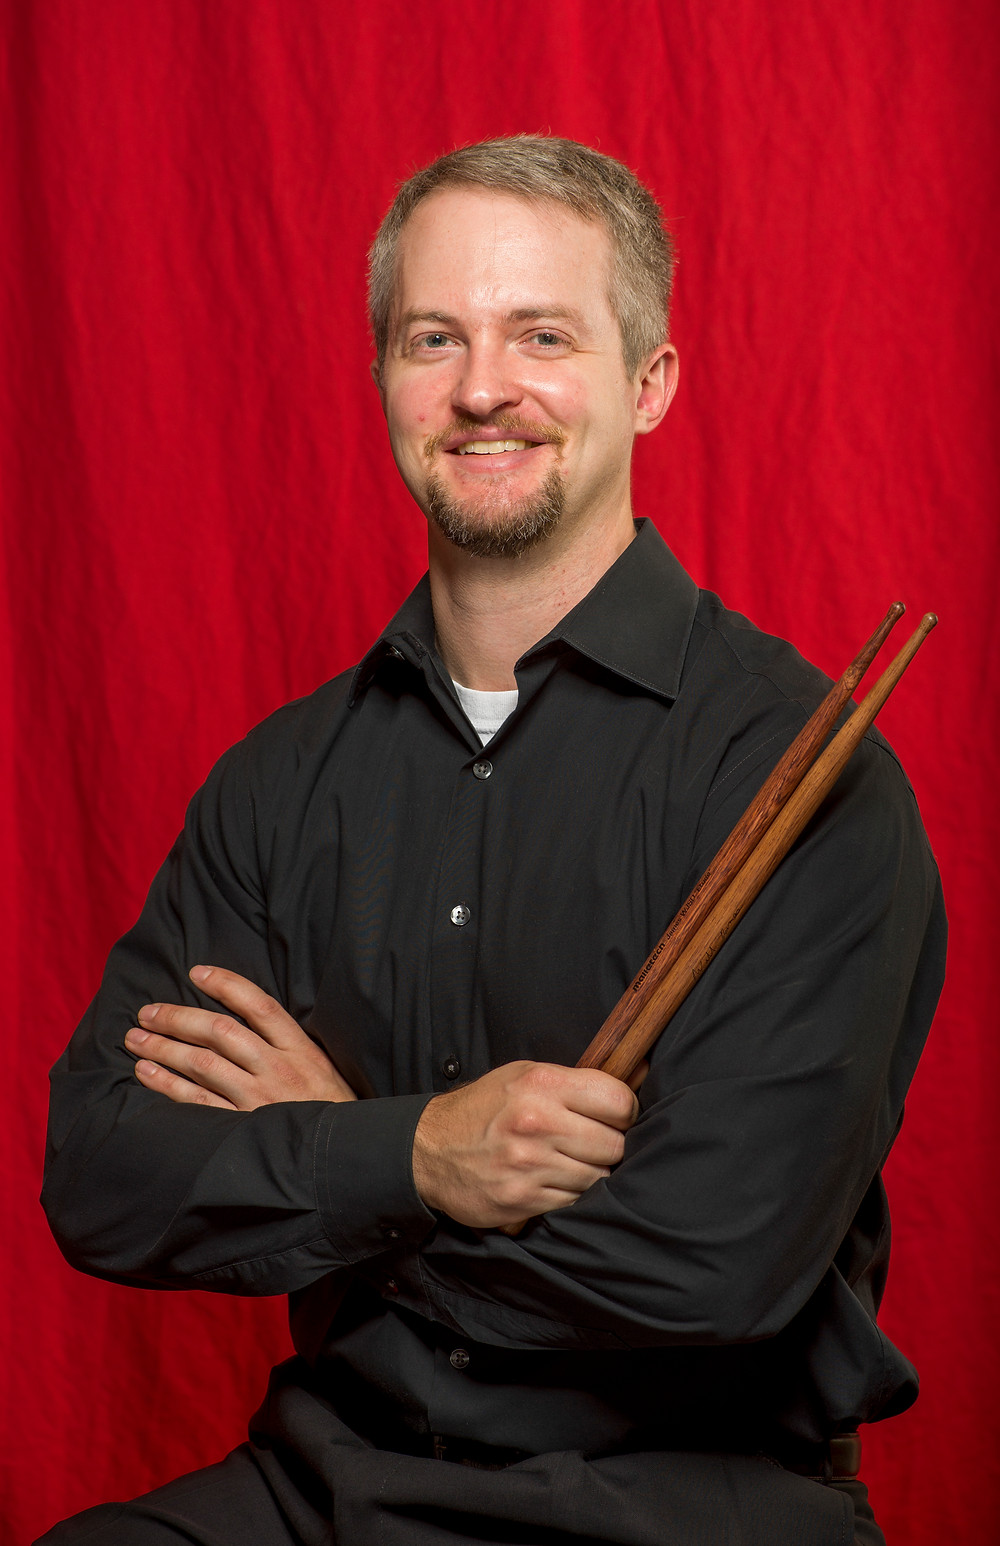 SLSO Principal Percussionist Will James Head Shot